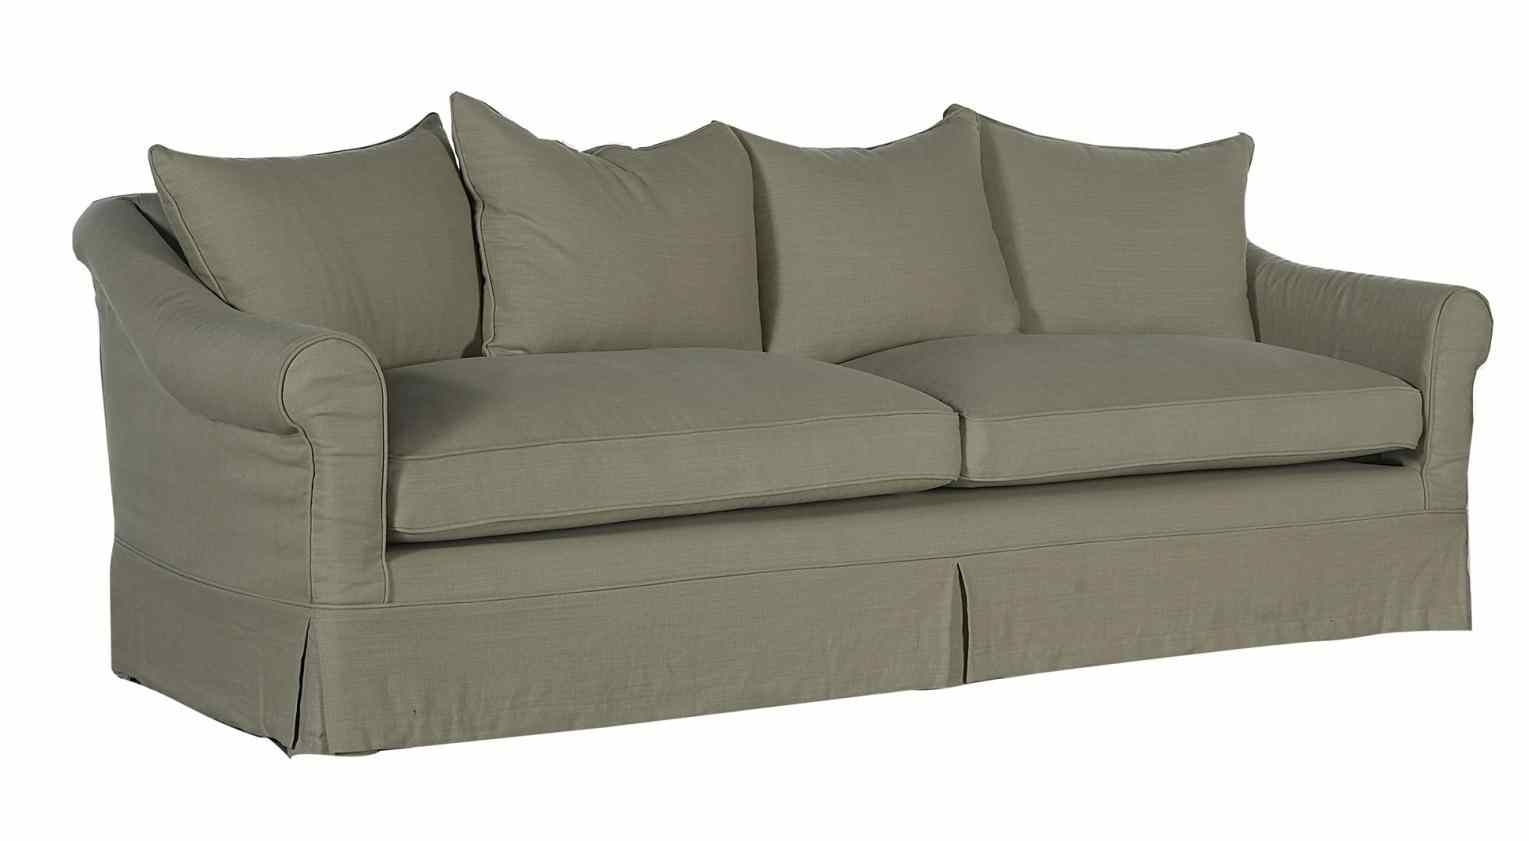 corner sofa with removable washable covers 18 inch doll for sale home and textiles